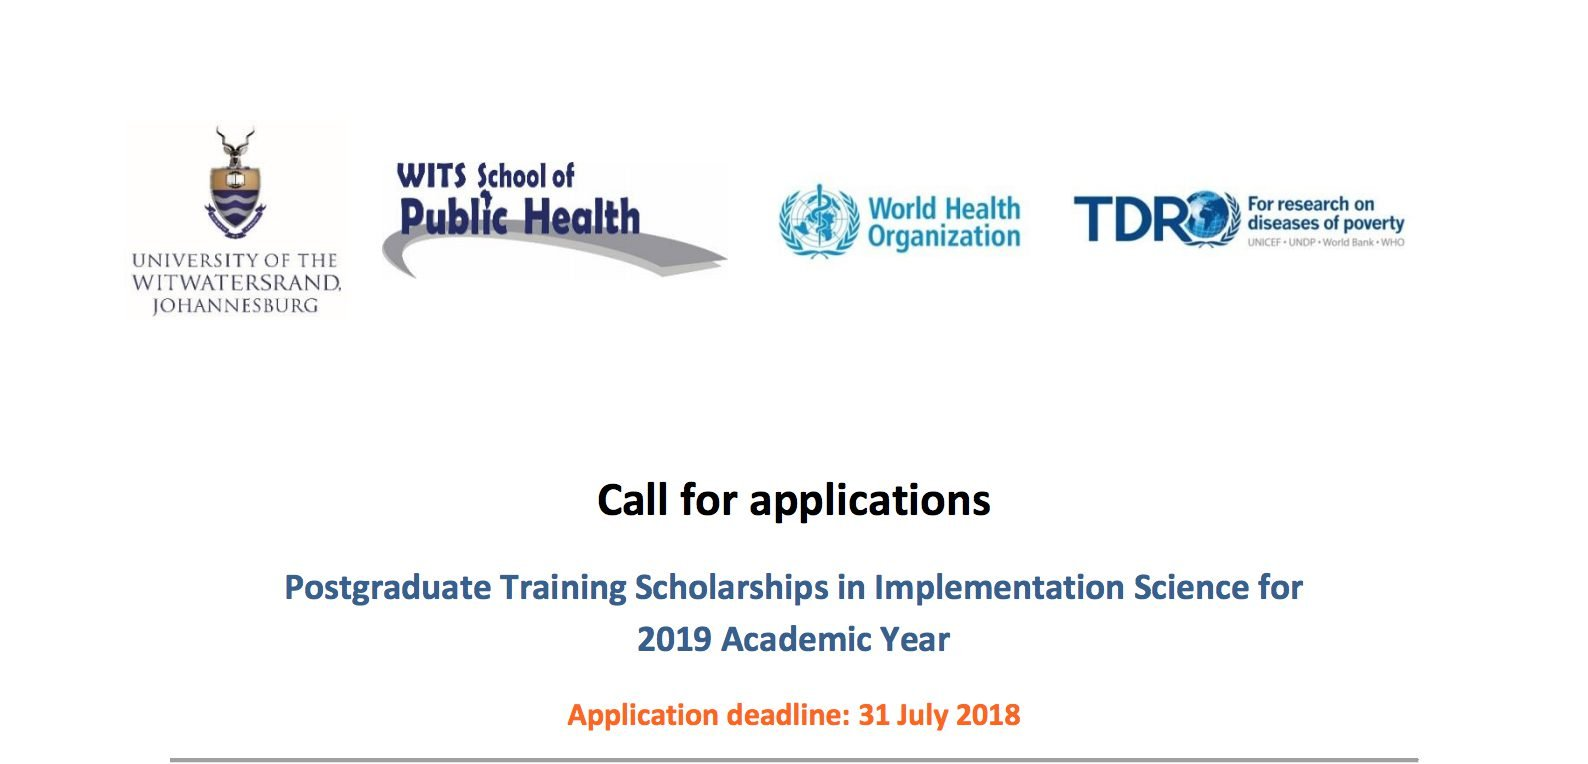 University of the Witwatersrand's WHO:TDR Postgraduate Training Scholarships in Implementation Science 2019